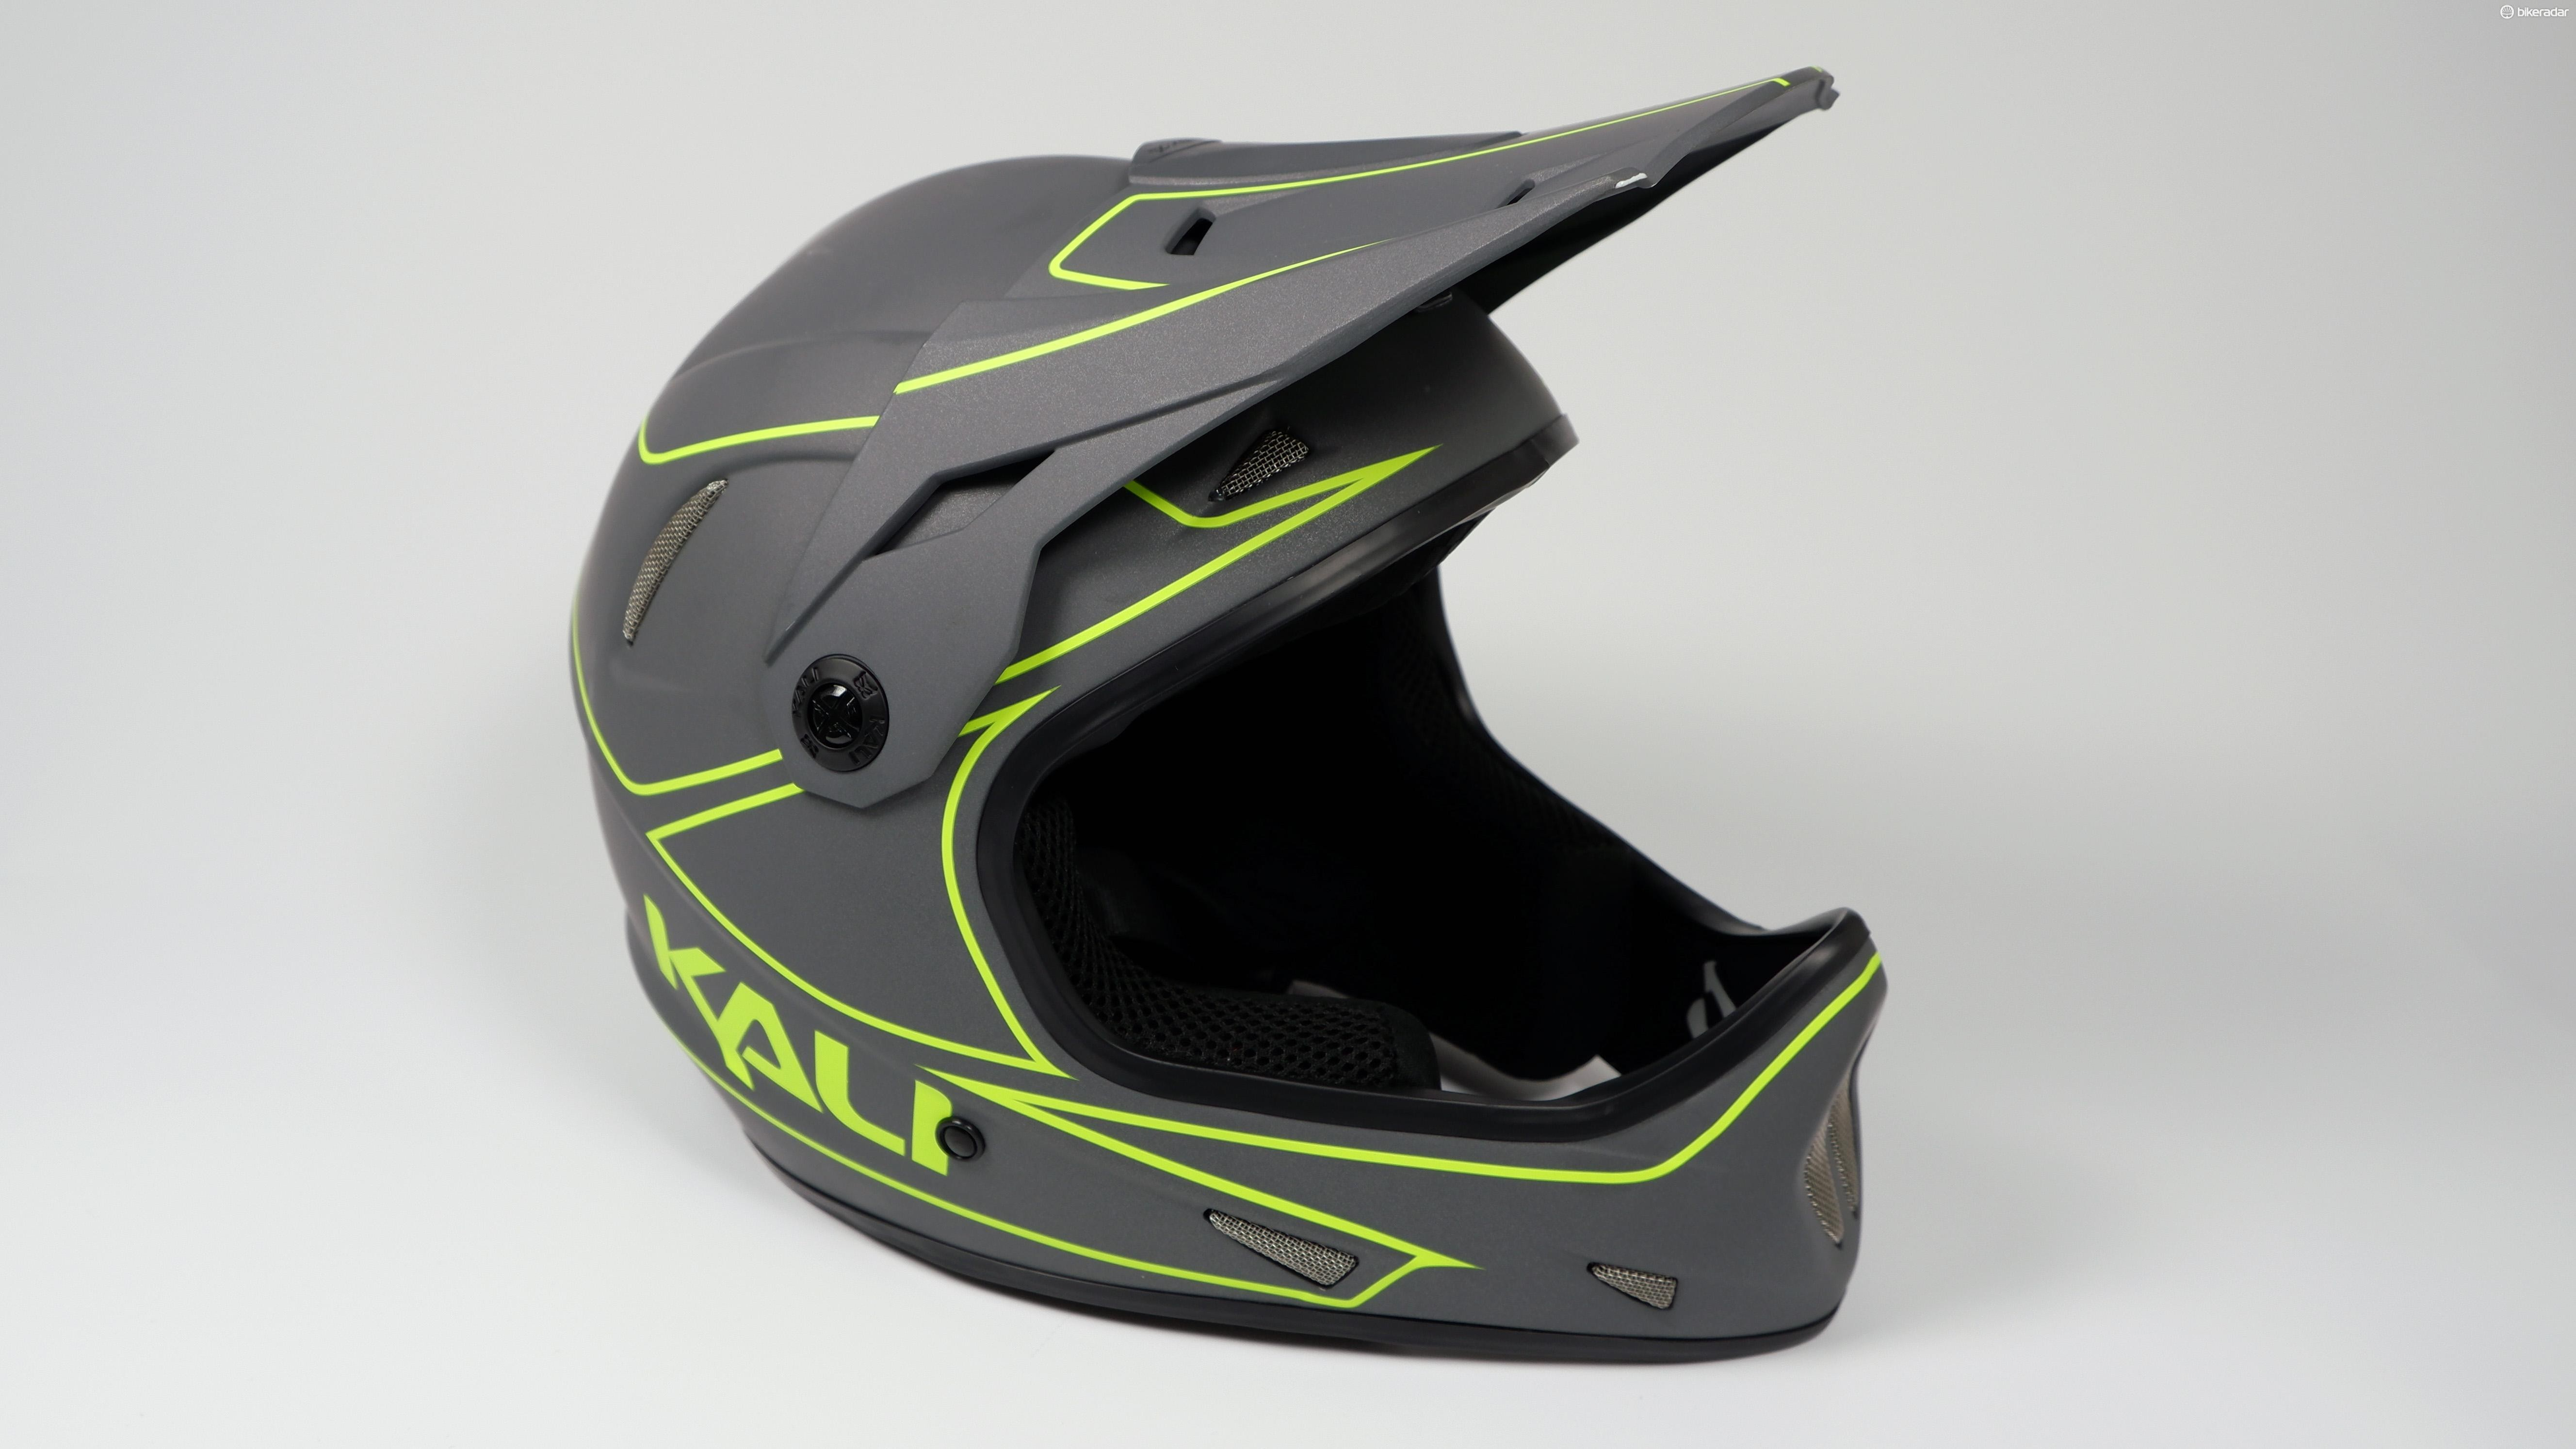 The Kali Alpine full-face helmet is claimed to be one of the lightest on the market